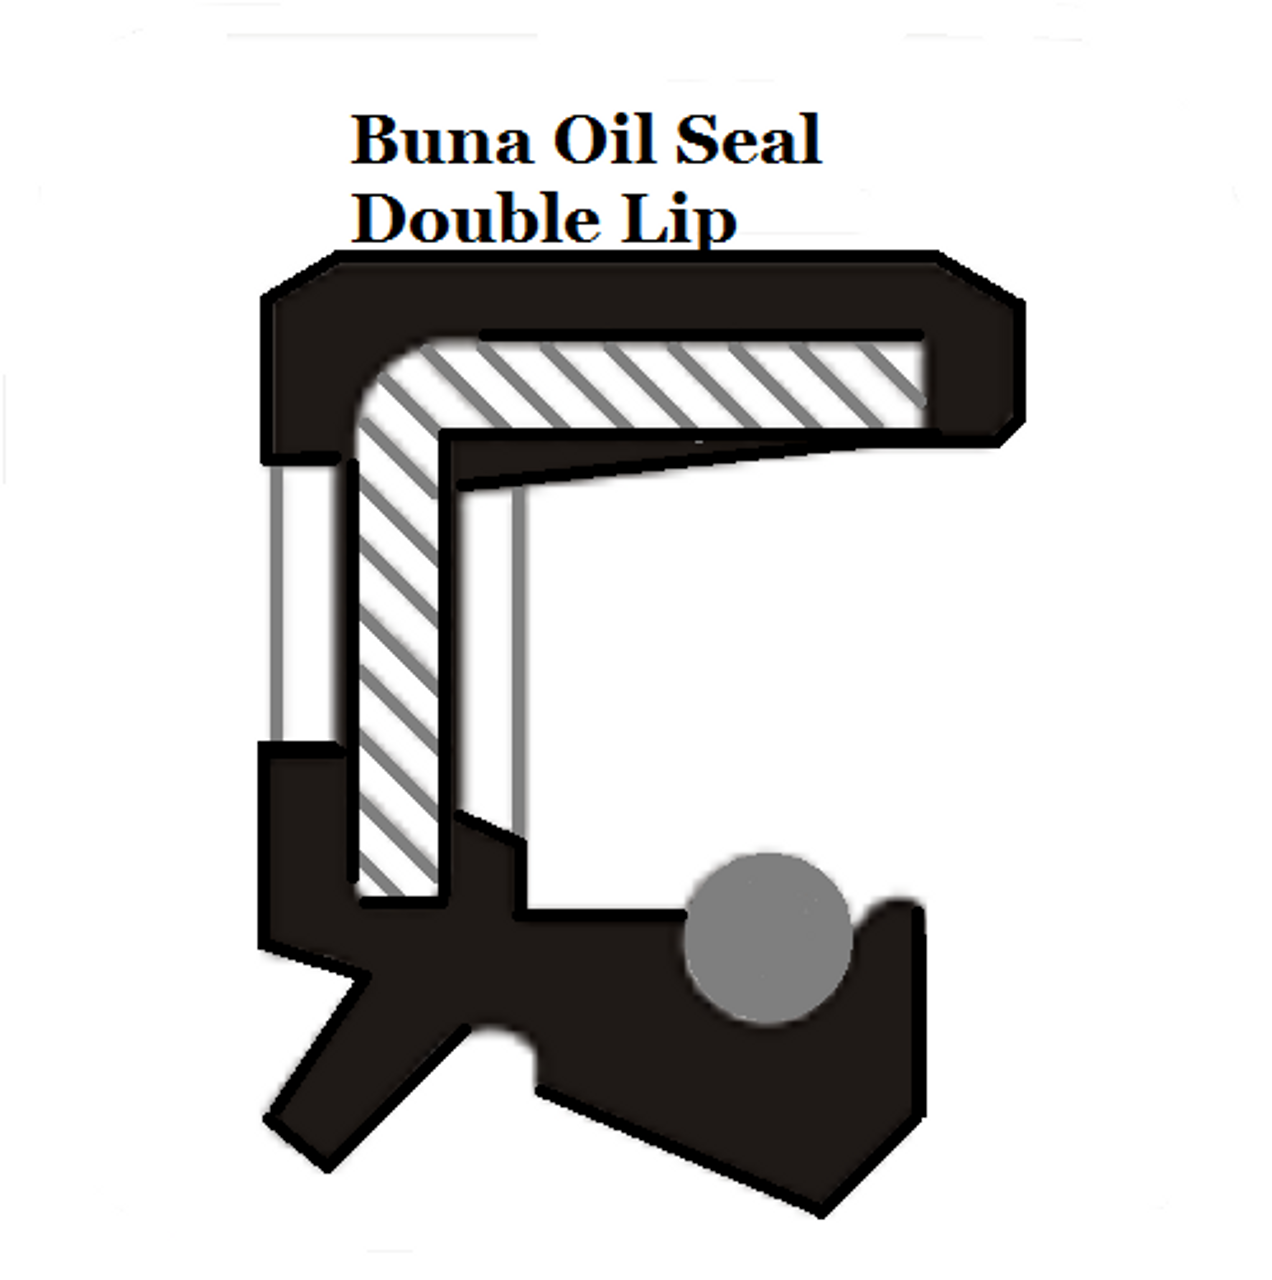 Oil Shaft Seal 65 x 120 x 10mm Double Lip   Price for 1 pc